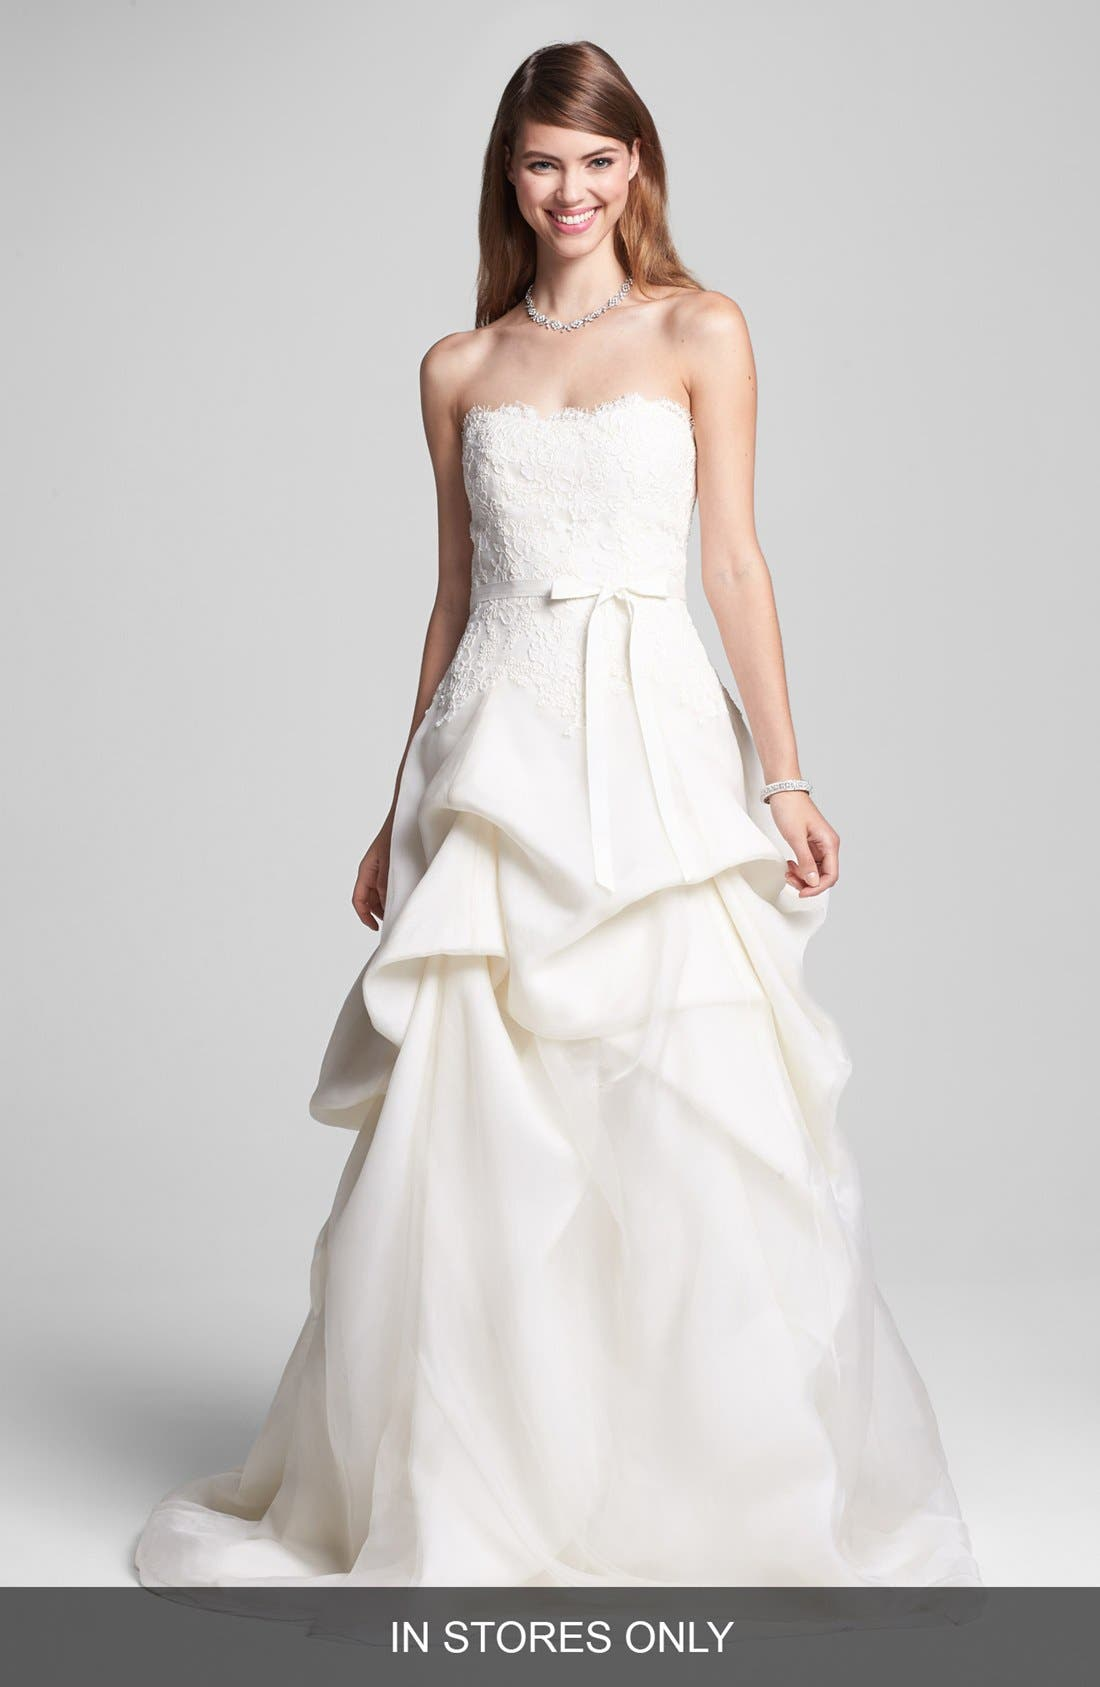 BLISS Monique Lhuillier Embroidered Lace & Tiered Organza Dress (In Stores Only)